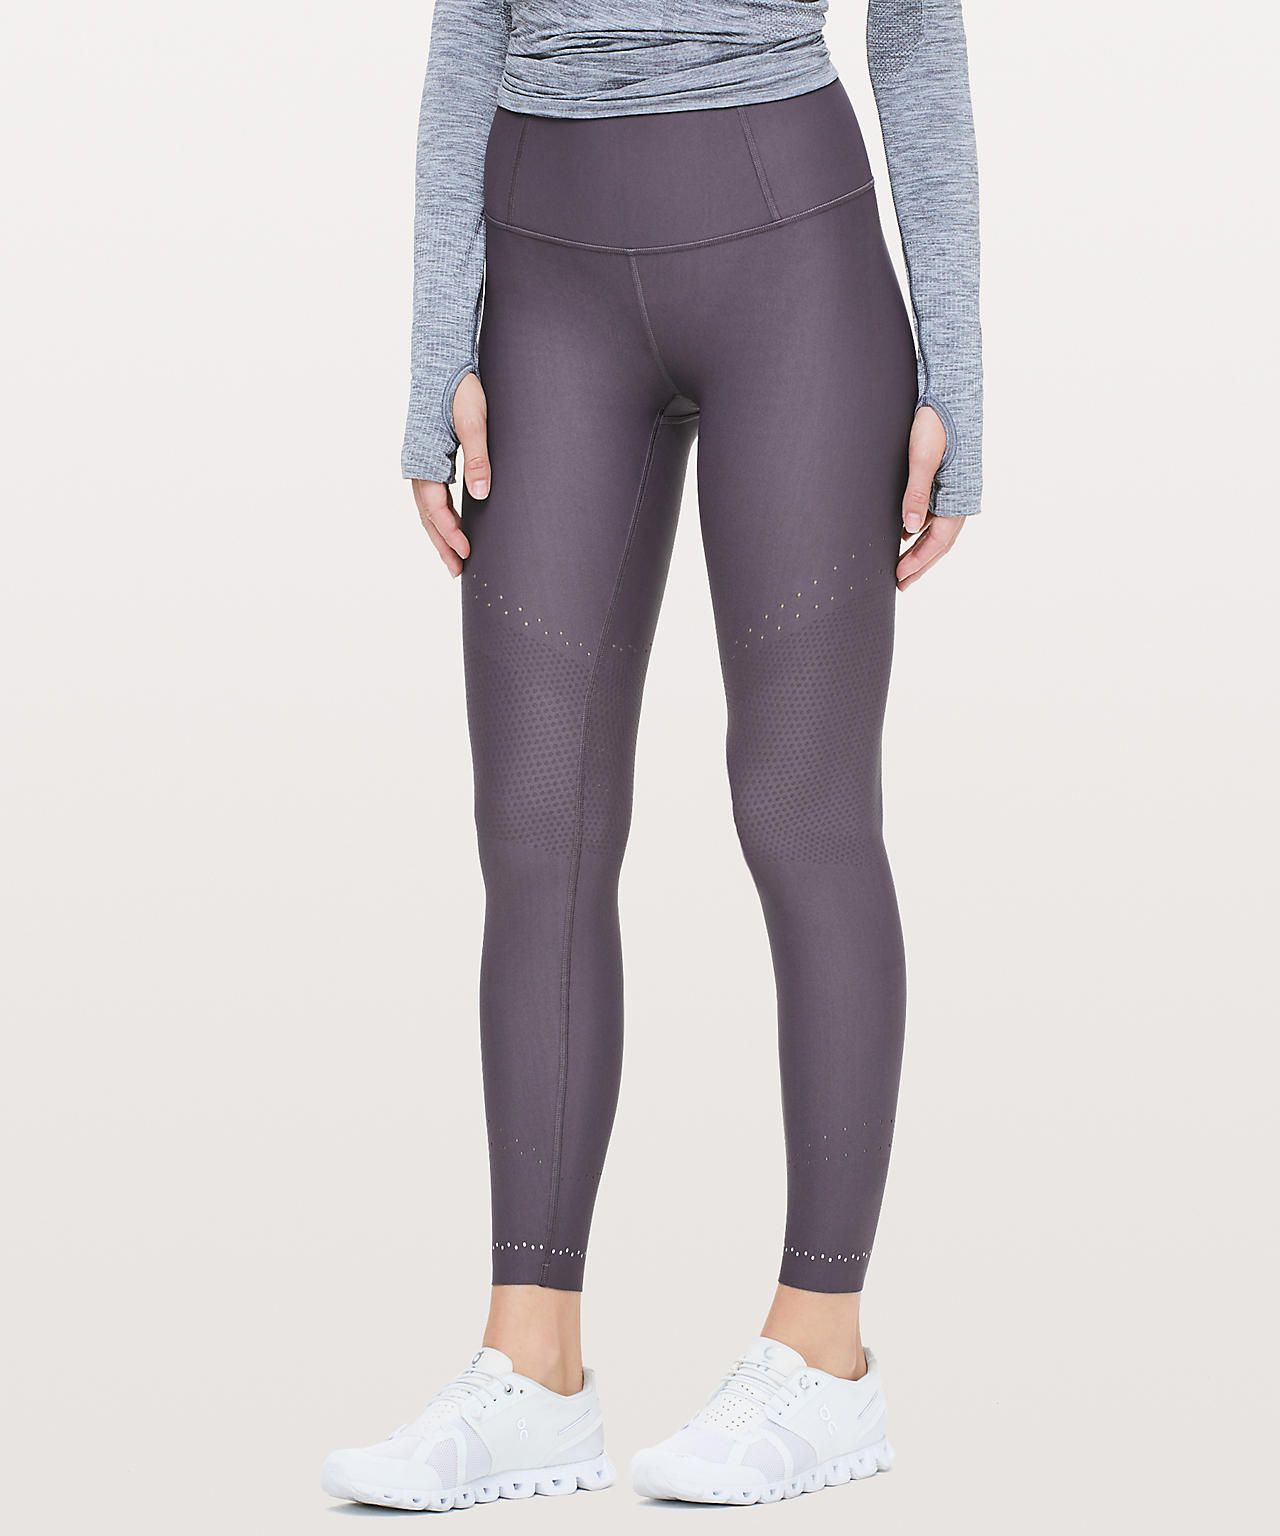 174454eff58424 Lululemon - Zoned In Tight | Sweet Sweat | Lululemon, Pants for ...